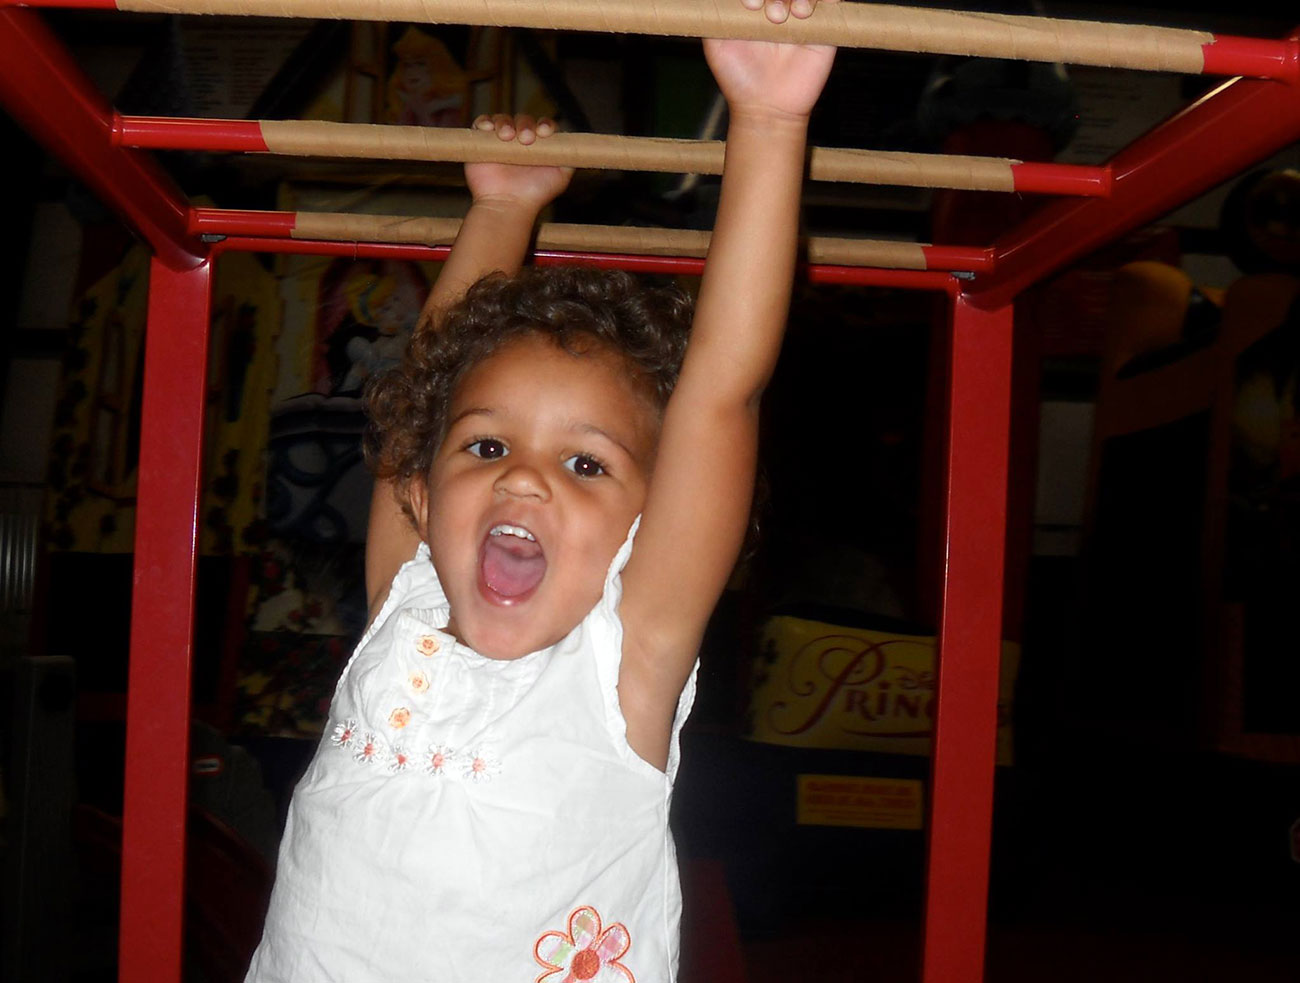 A student has fun on the monkey bars